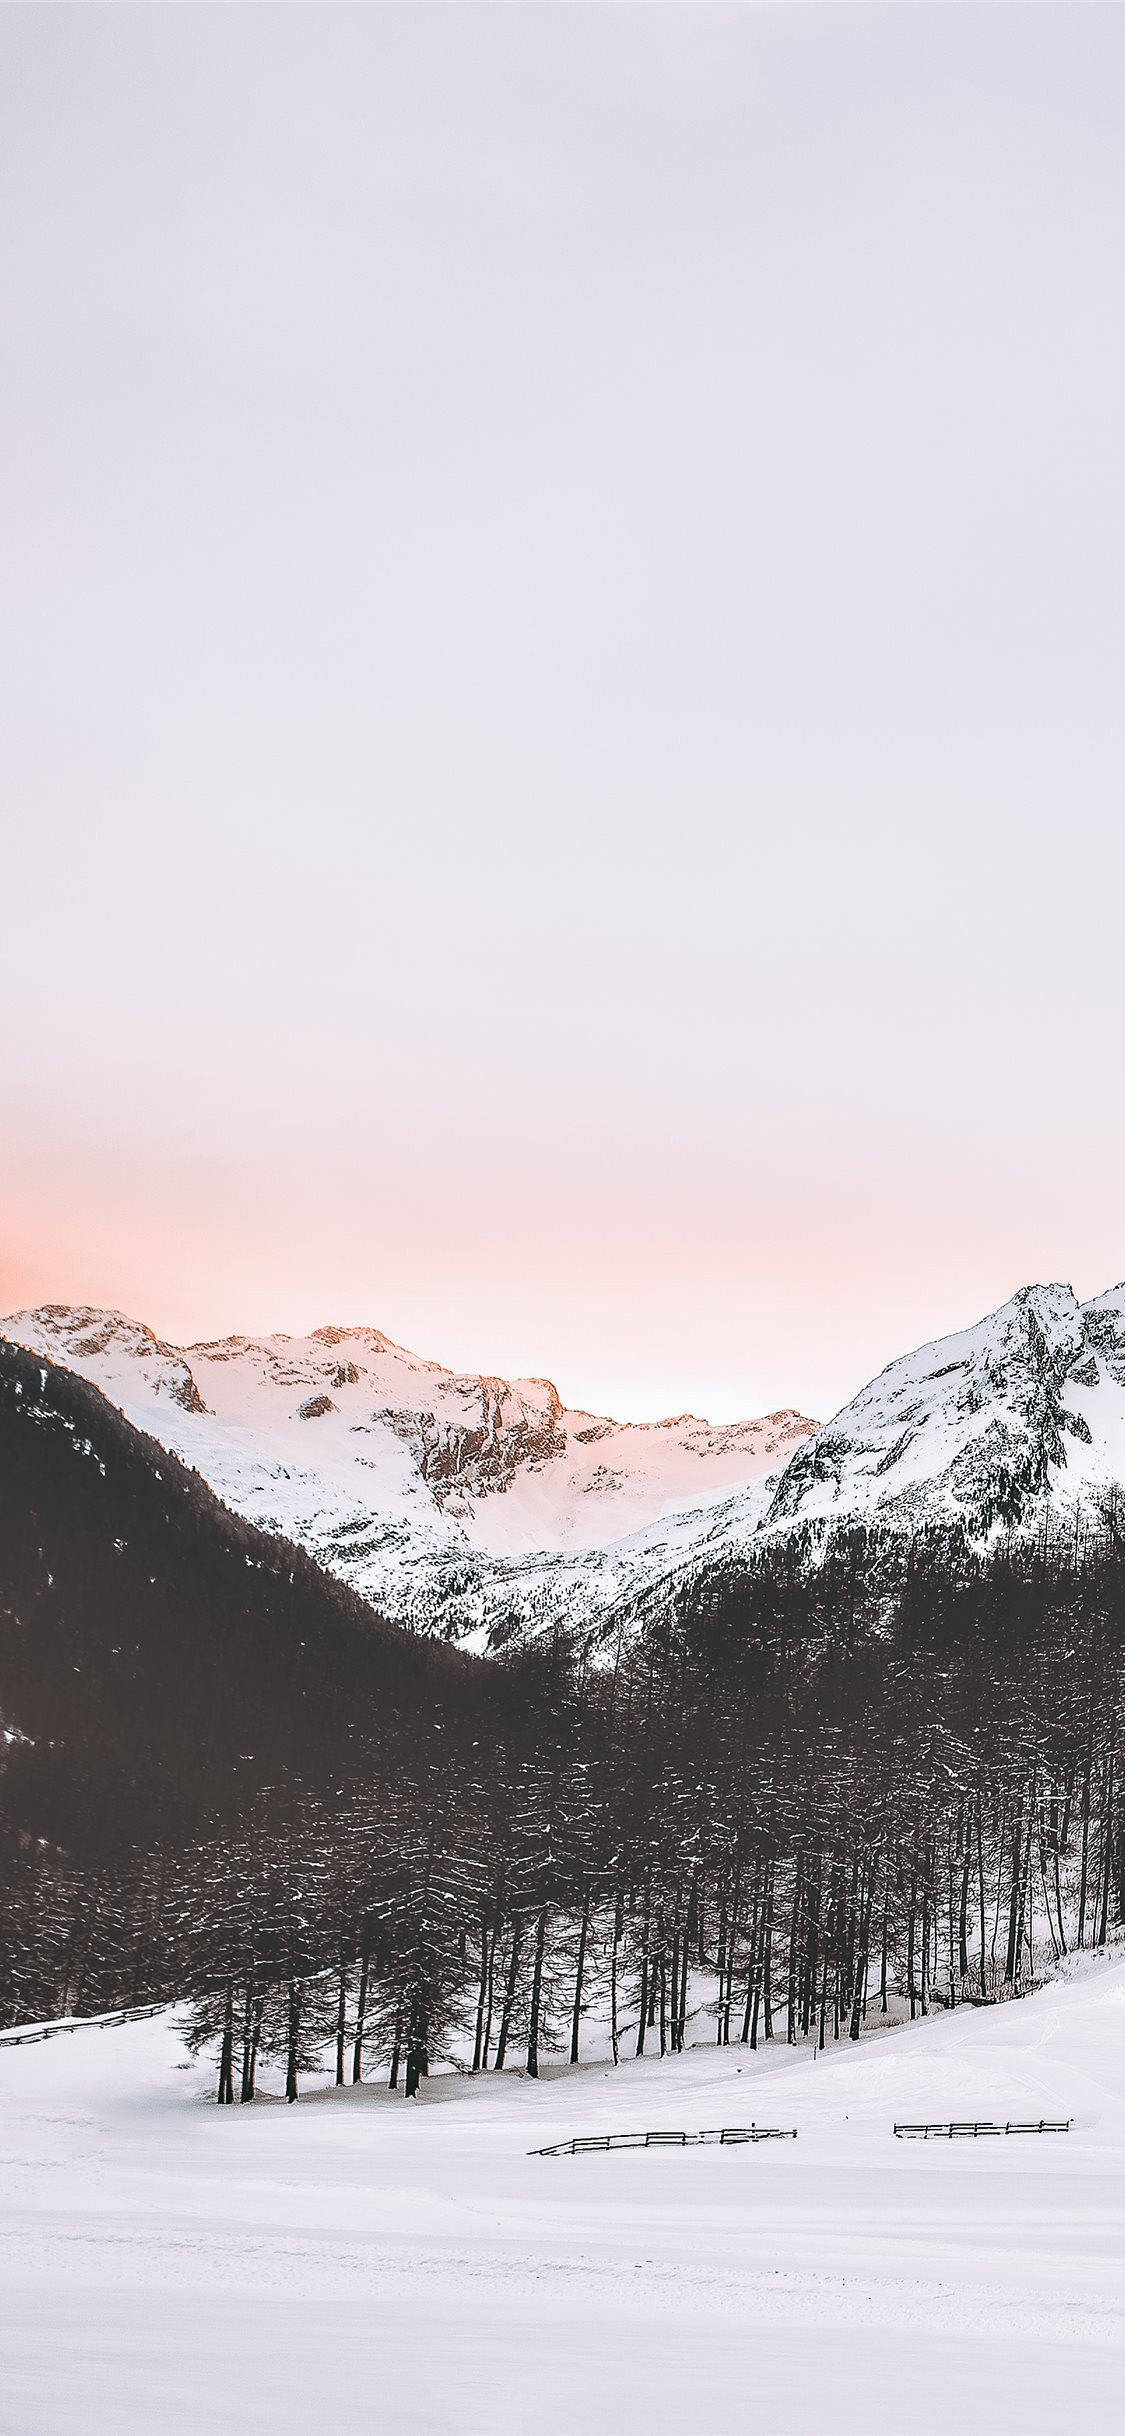 snow covered mountains iphone x wallpaper ilikewallpaper